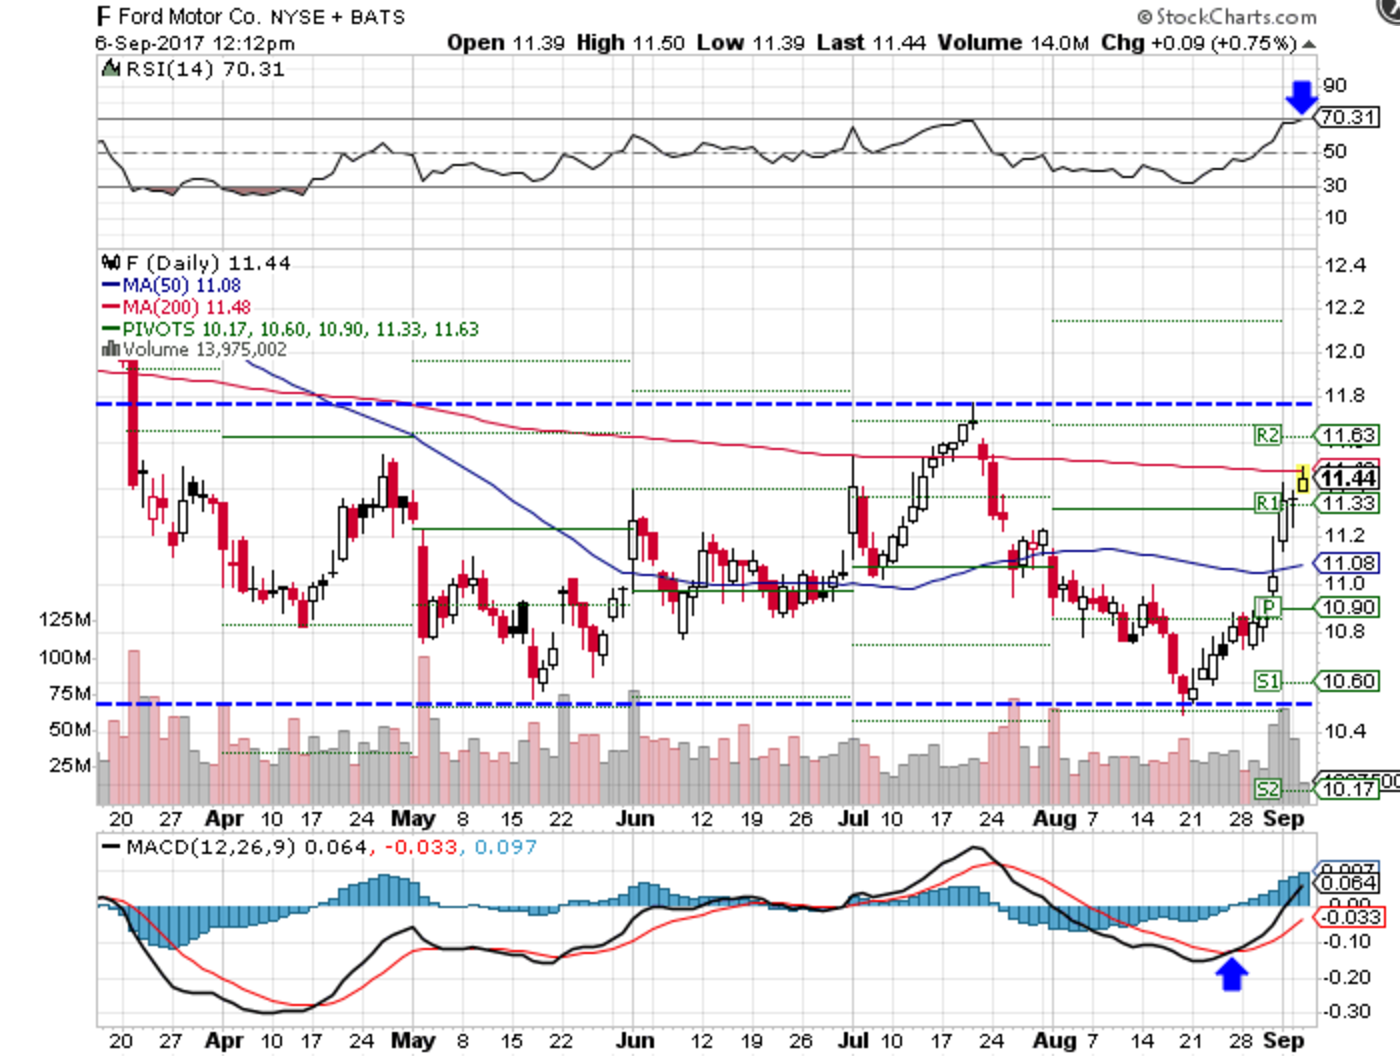 Technical chart showing the performance of Ford Motor Company (F) stock